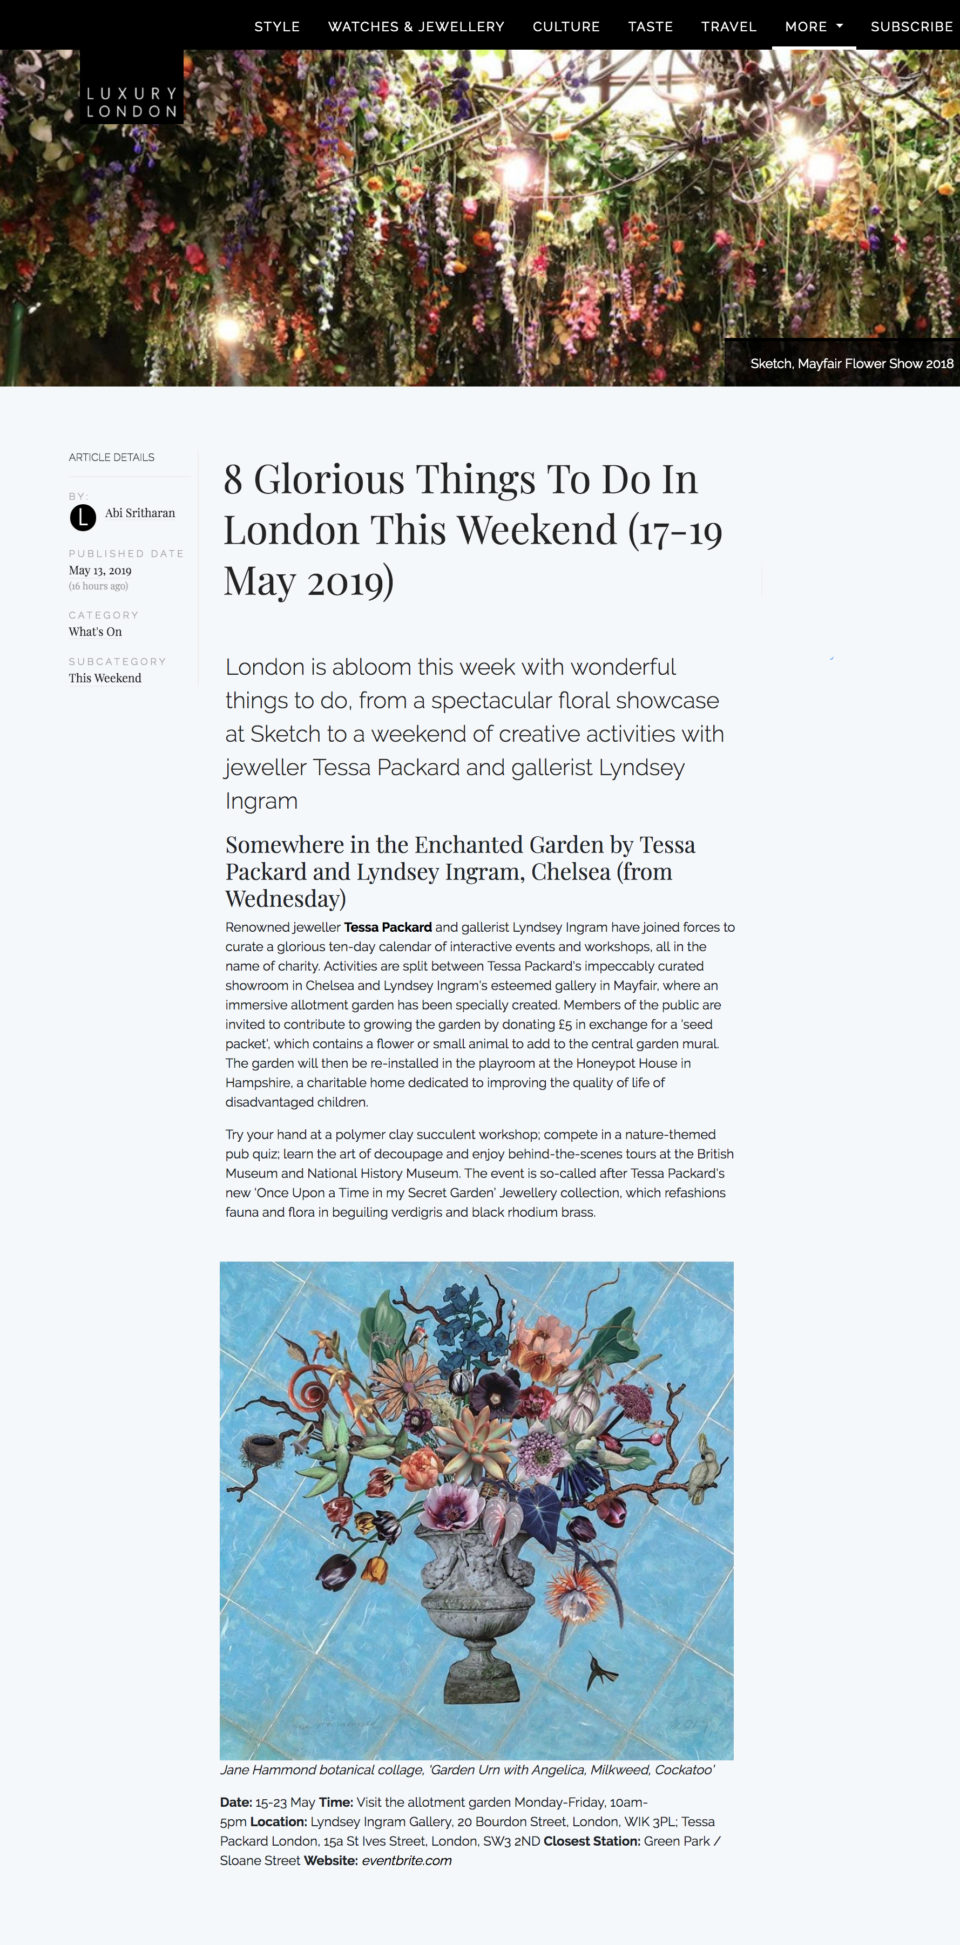 Somewhere in the Enchanted Garden Events Series by Tessa Packard London Contemporary Fine Jewellery Featured in Luxury London May 2019 Issue